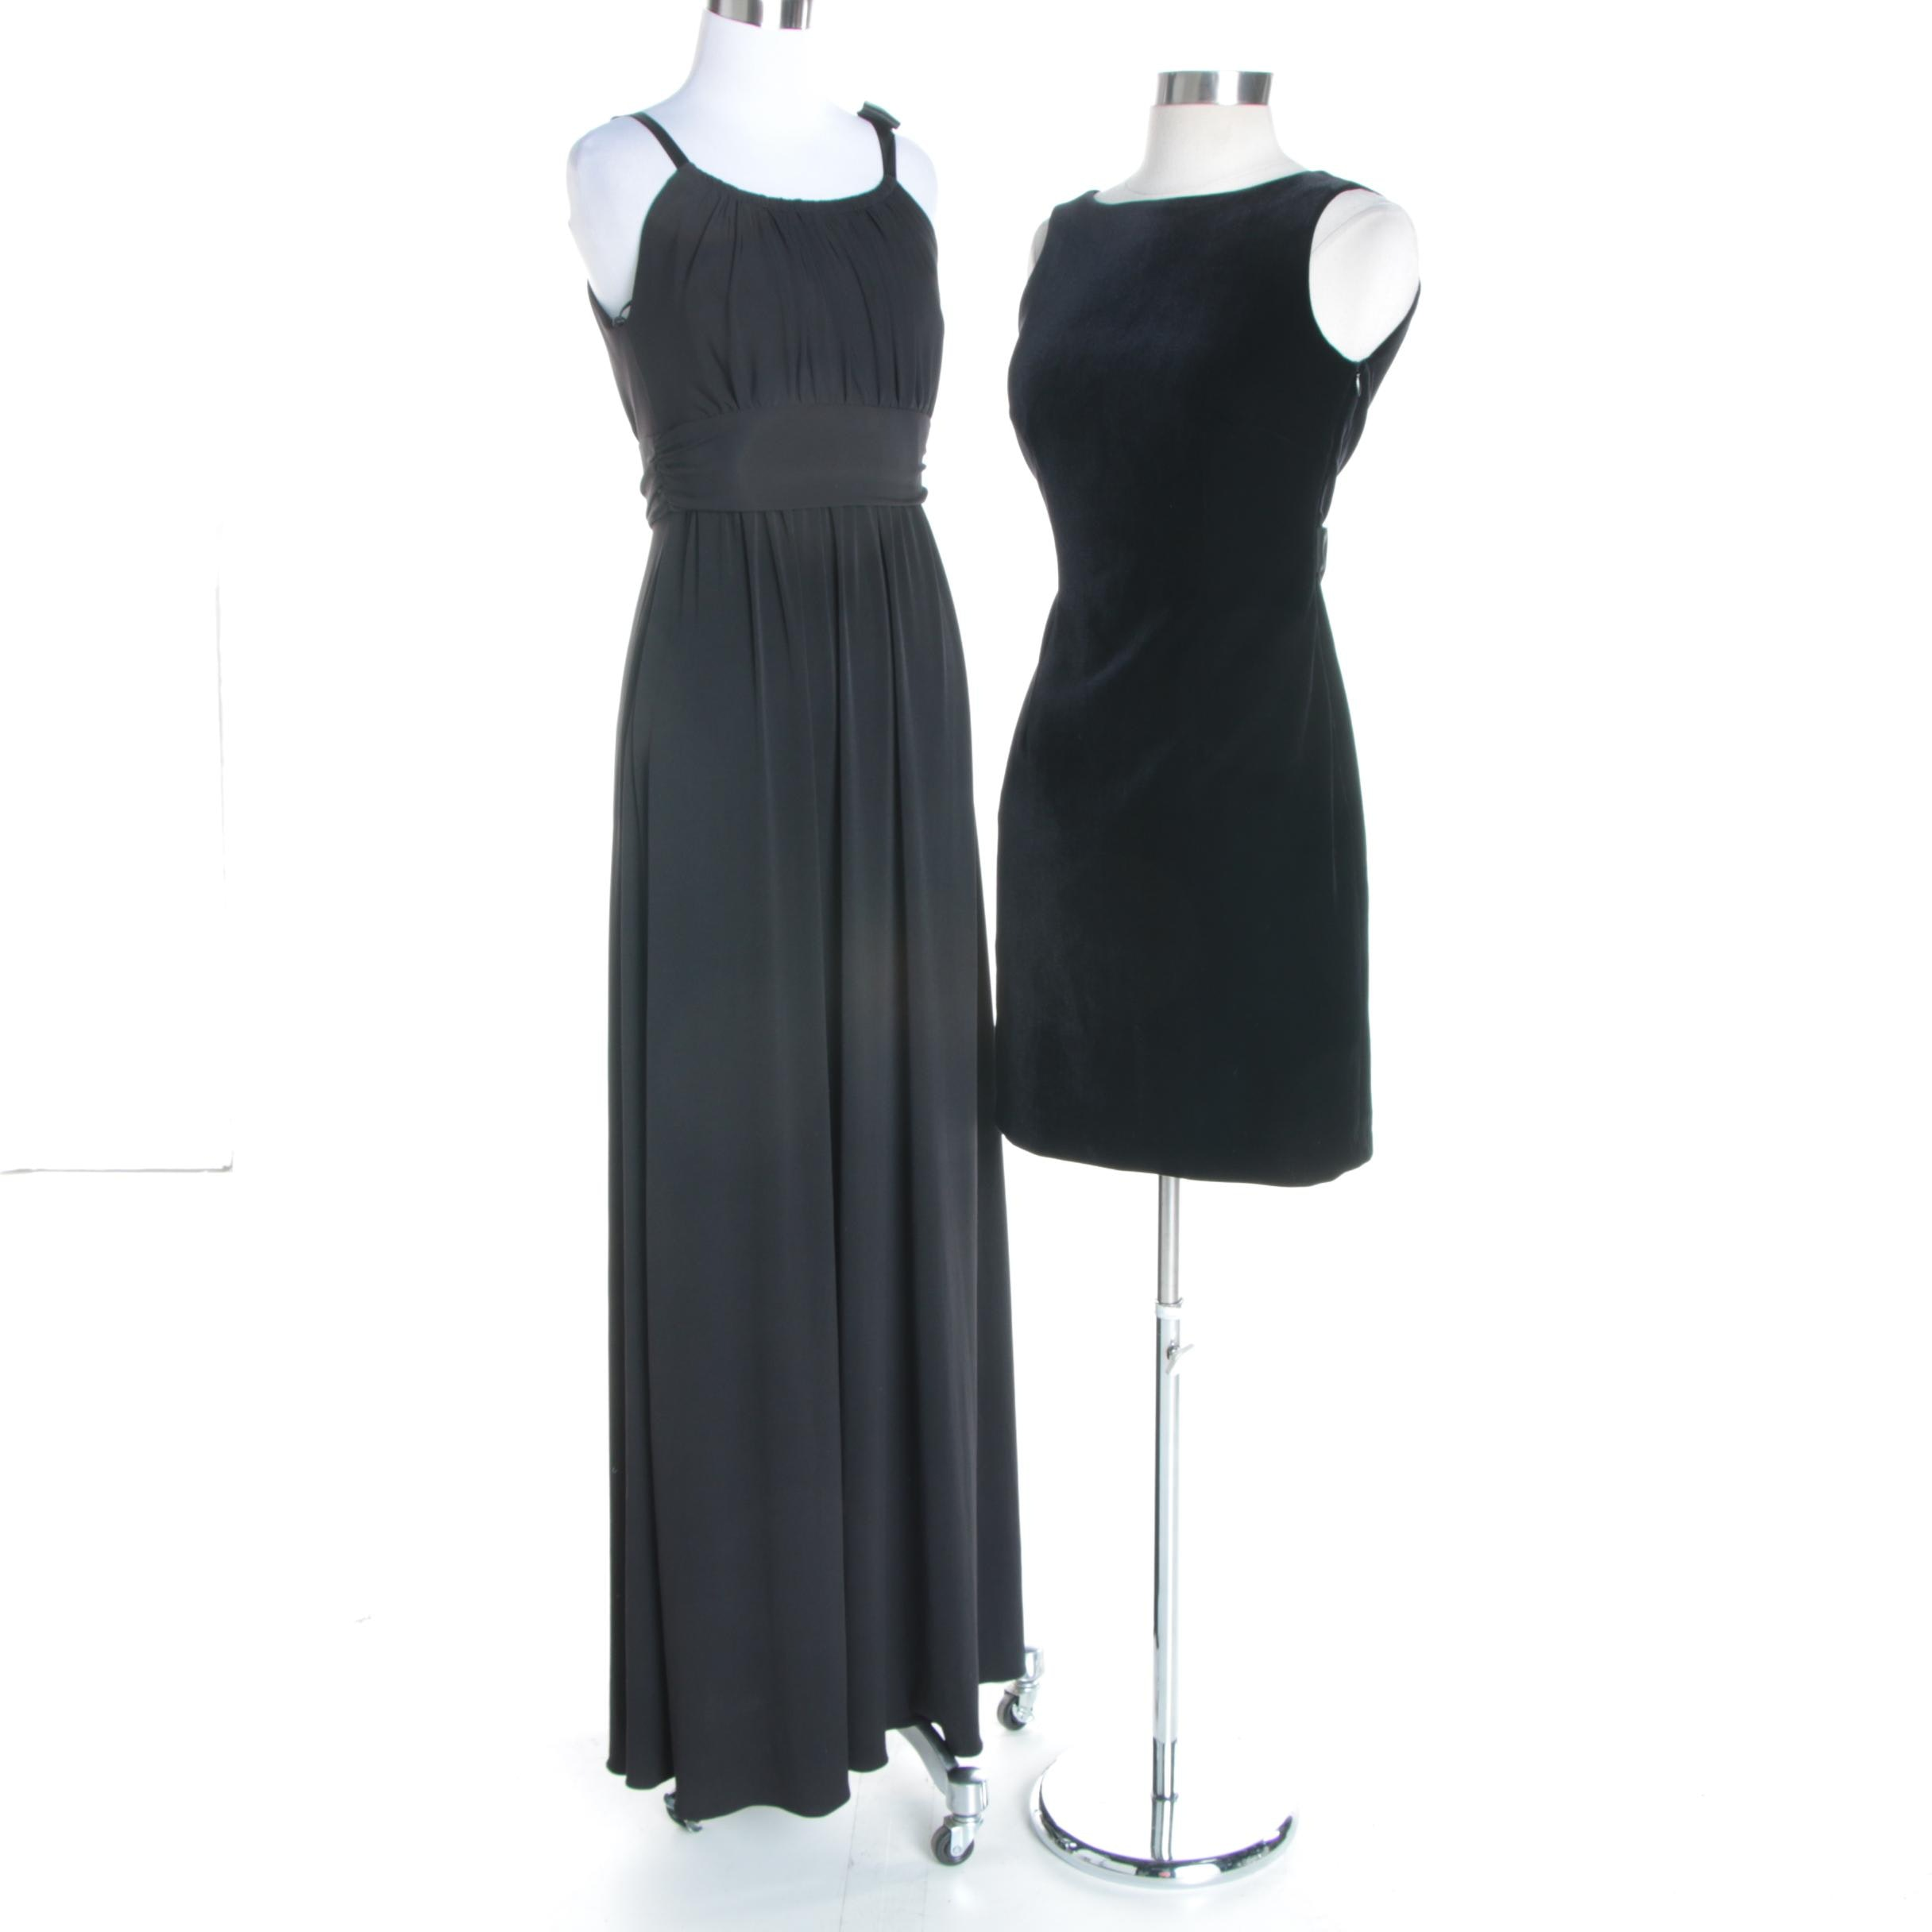 Women's Sleeveless Black Evening Dresses Featuring Laundry by Shelli Segal